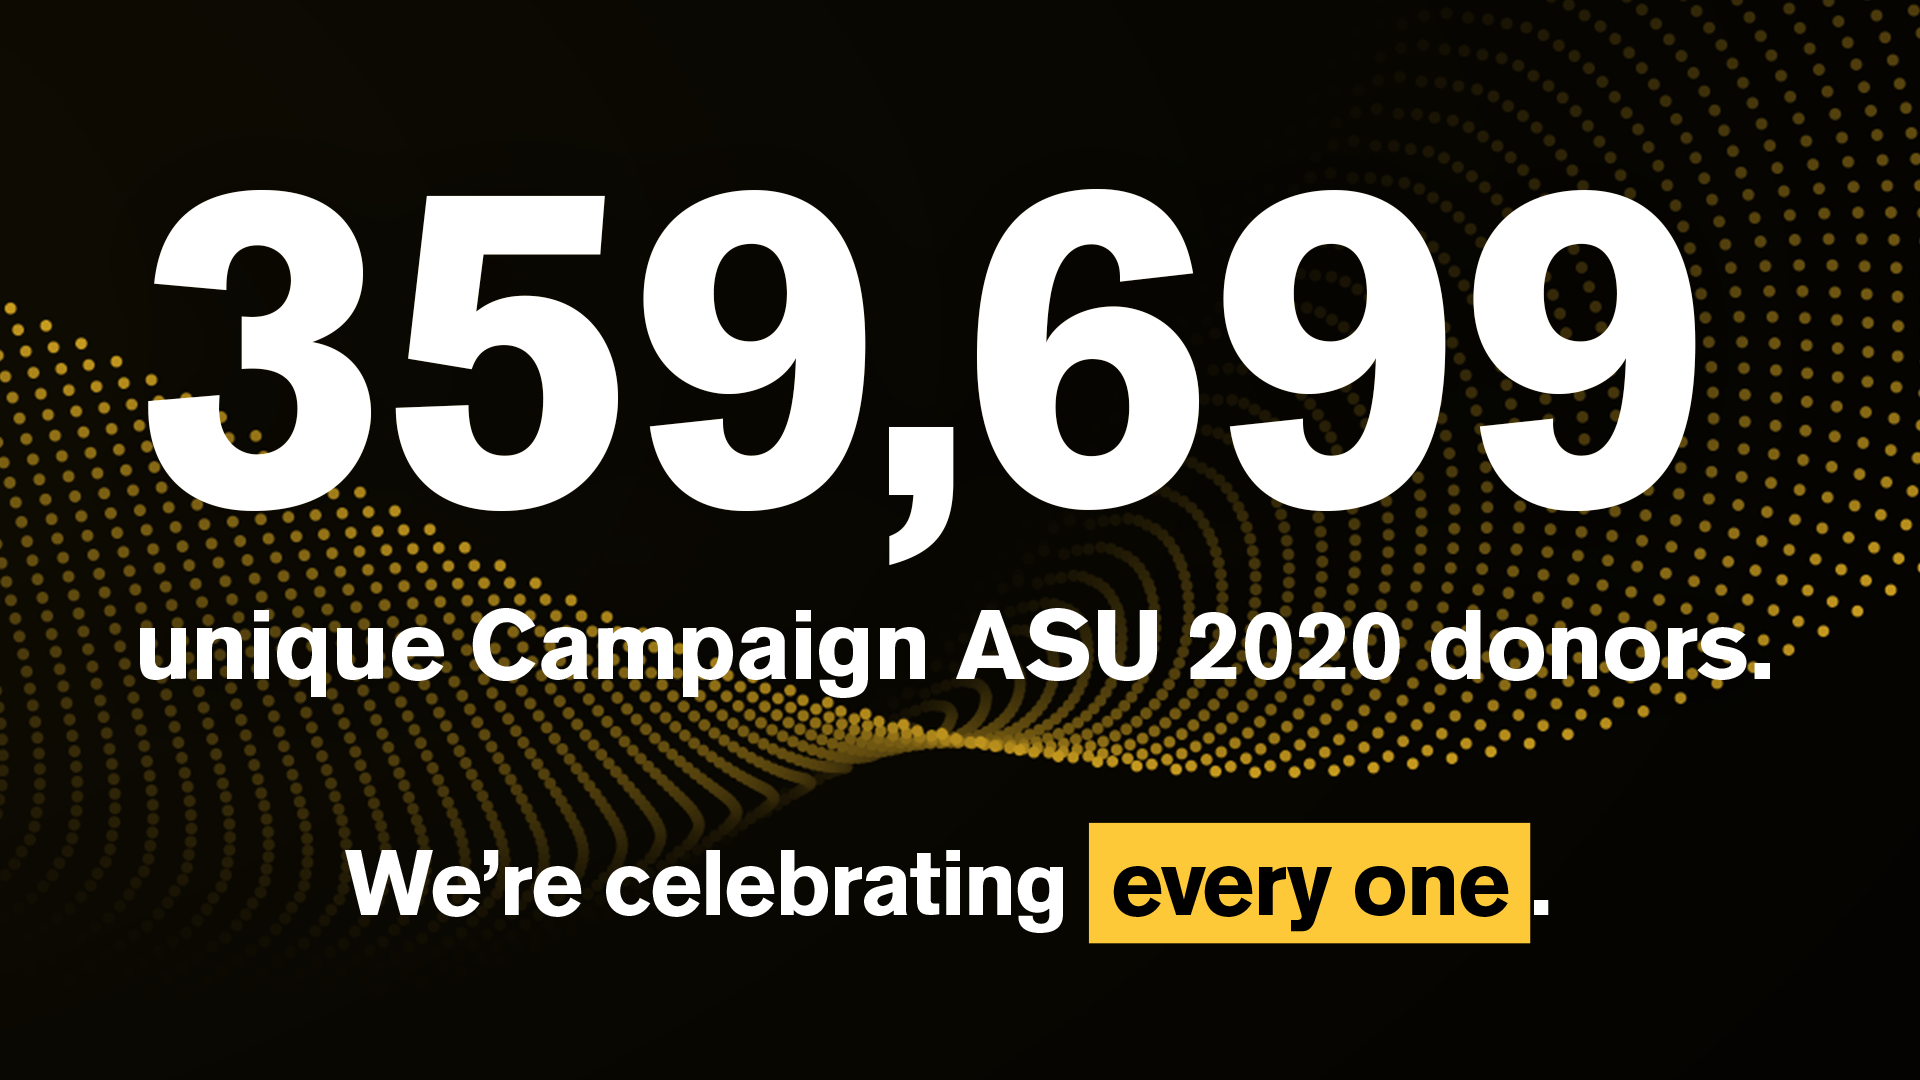 2020 Donors